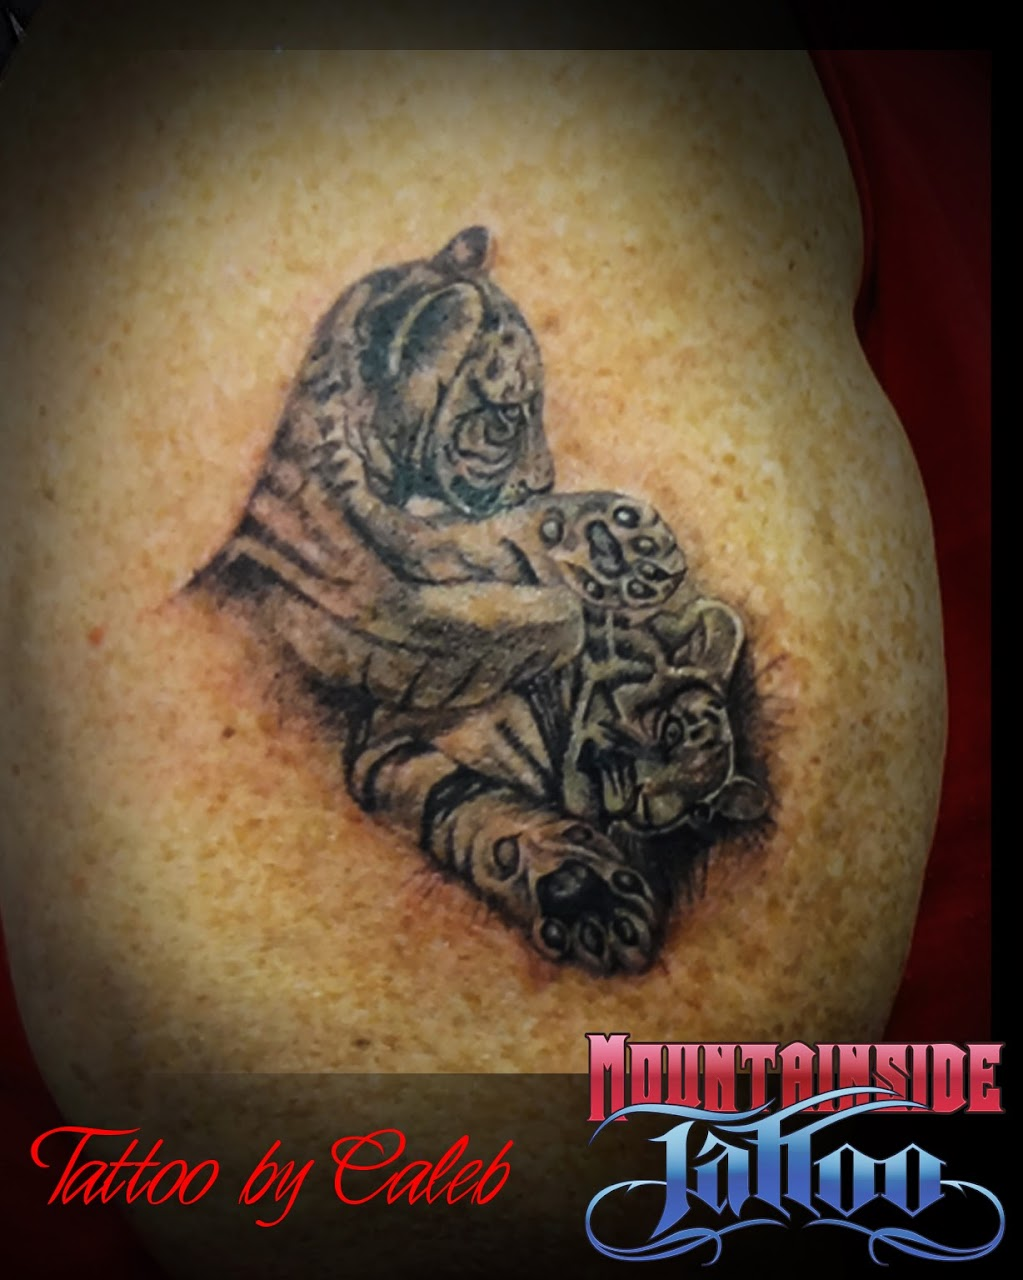 Mountainside tattoo and piercing b w tattoos for Tattoo removal nj